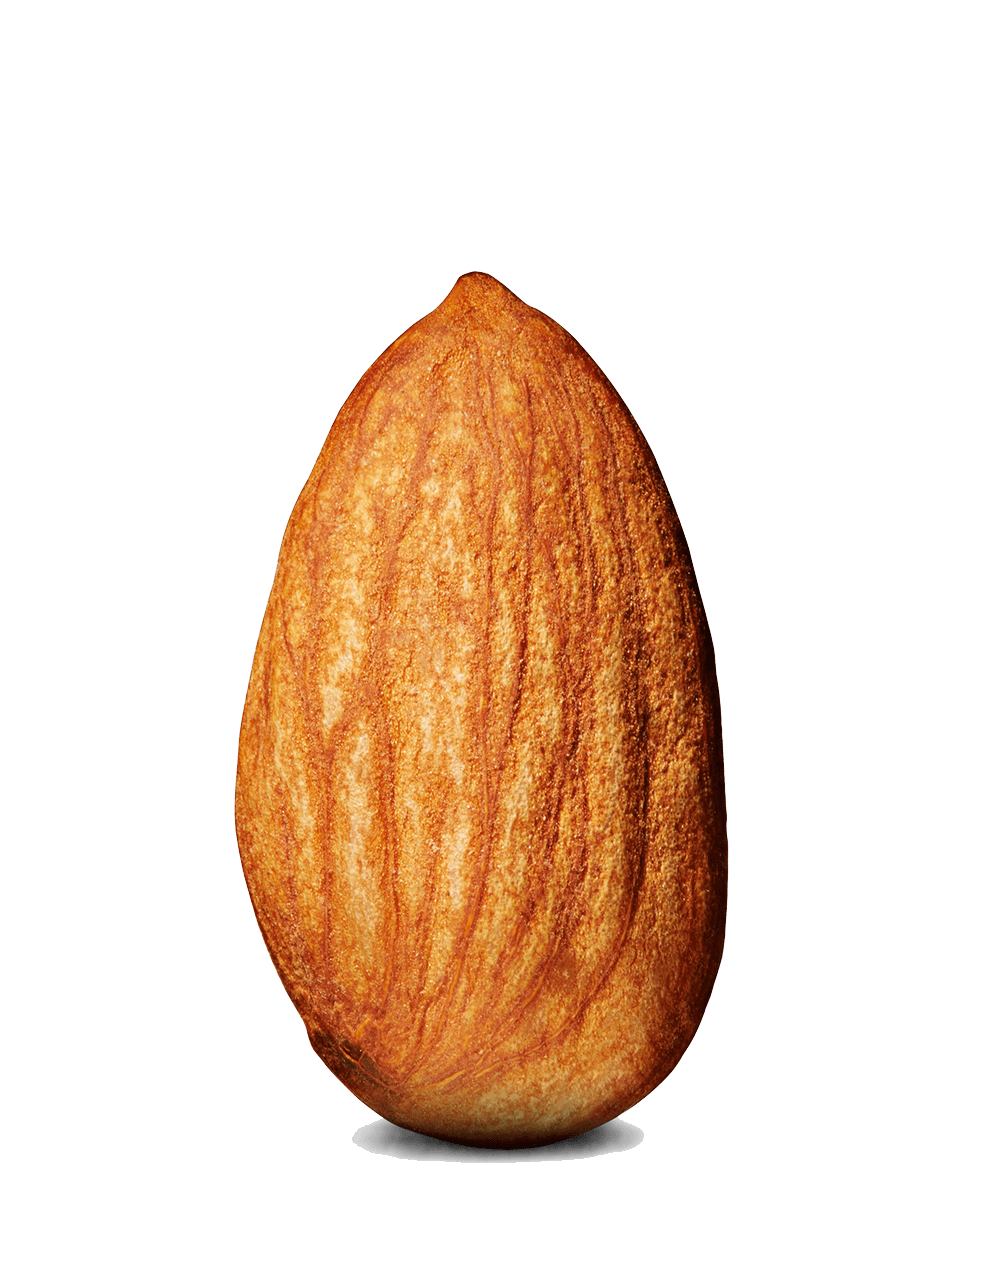 almond single transparent png stickpng #30327